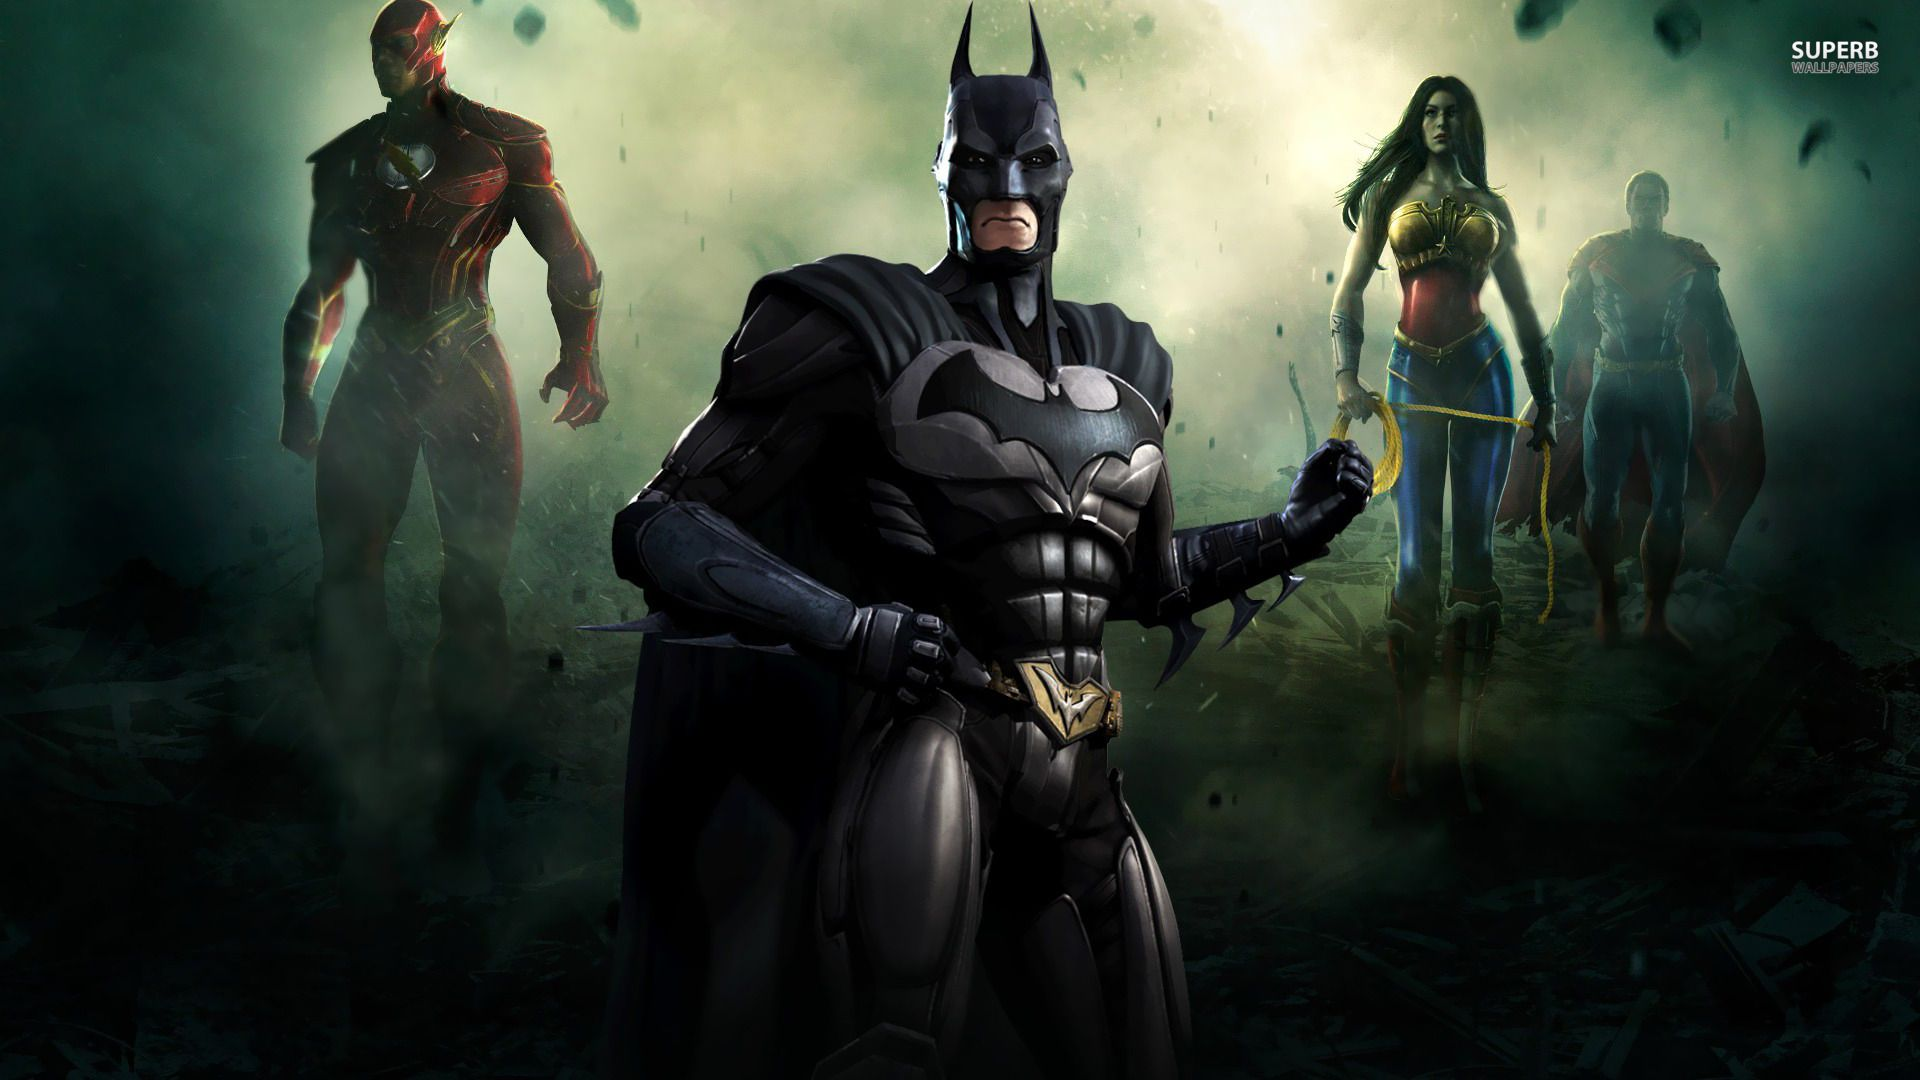 Batman Injustice Gods Among Us Wallpaper Batman Injustice Injustice Batman Wonder Woman